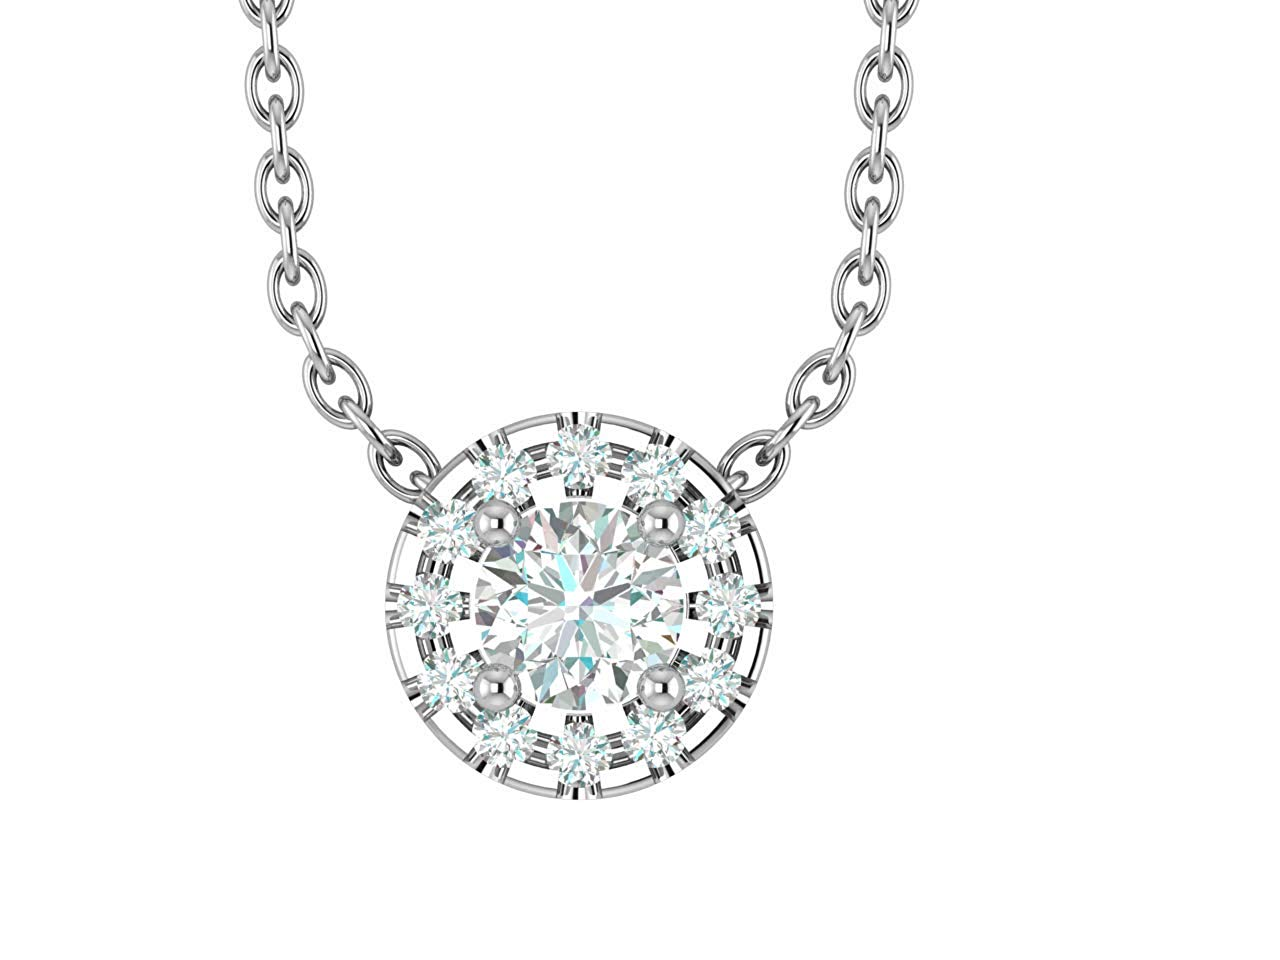 """14K White Gold 1/4-3/4 Carat (H-I Color,SI2-I1 Clarity) Natural Diamond Halo Solitaire Pendant Necklace for Women with 18"""" Silver Chain"""